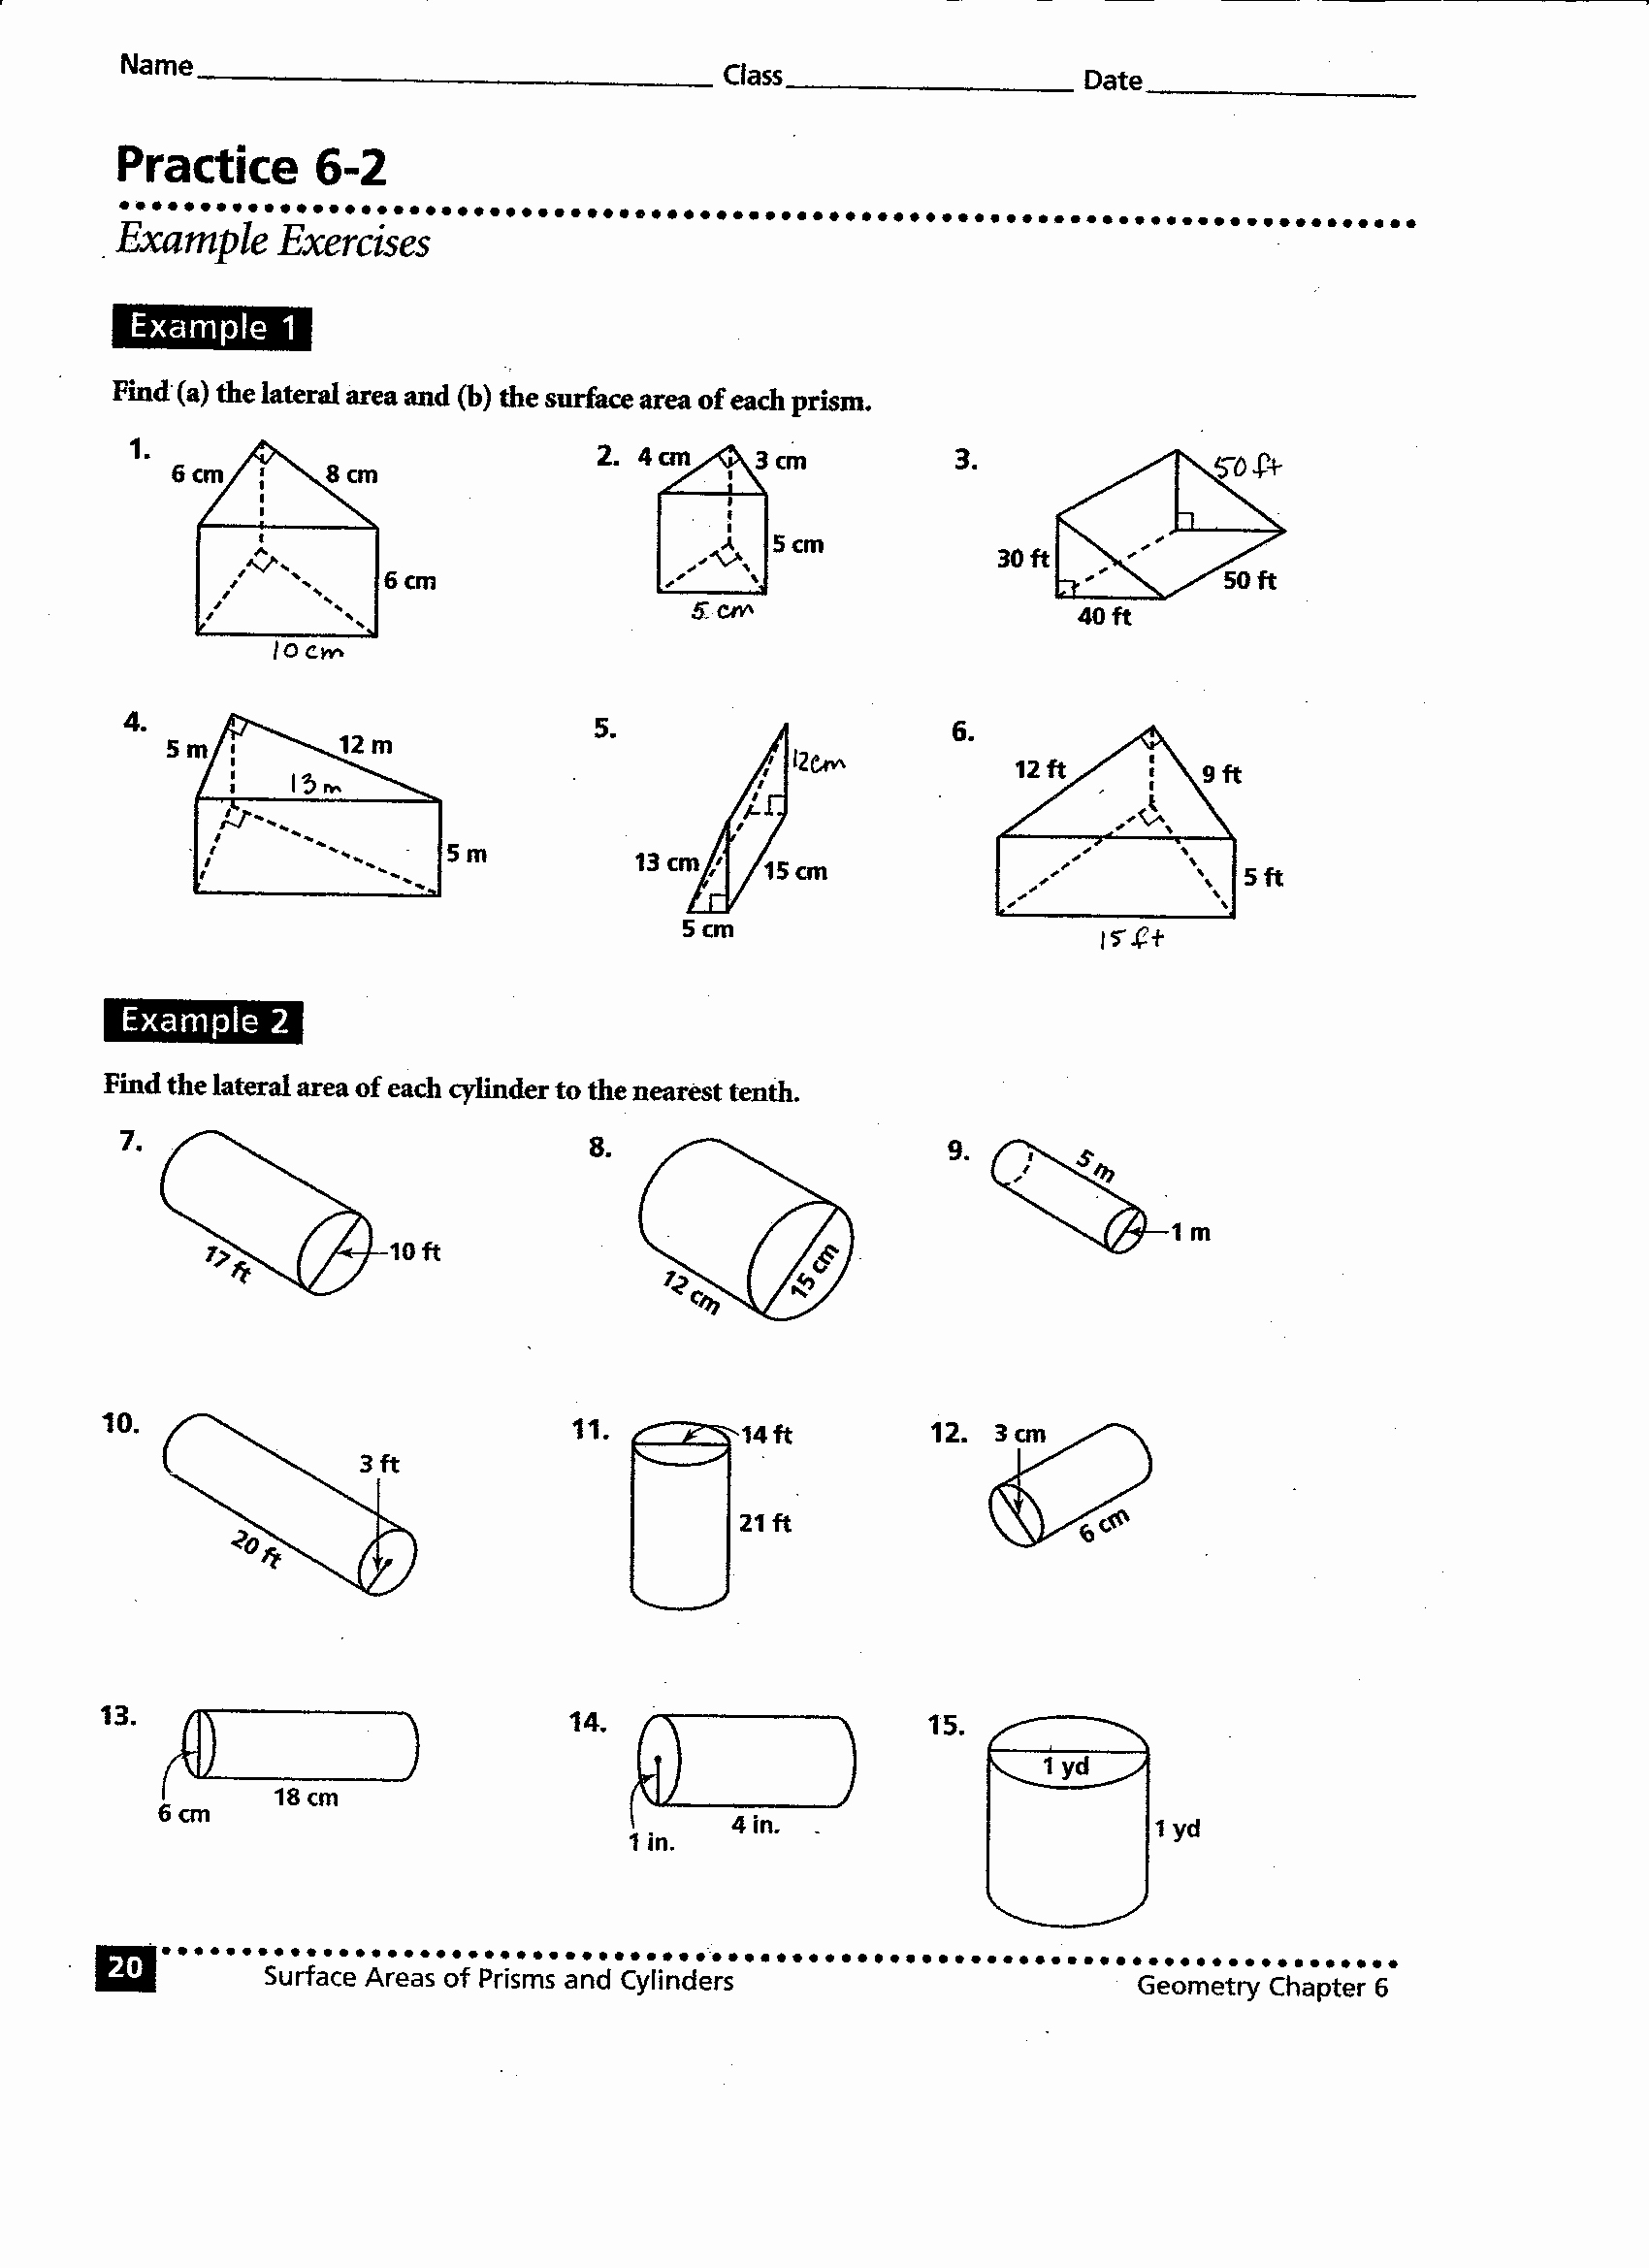 Volumes Of Prisms Worksheet Inspirational 41 Volume Prisms and Cylinders Worksheet Quiz